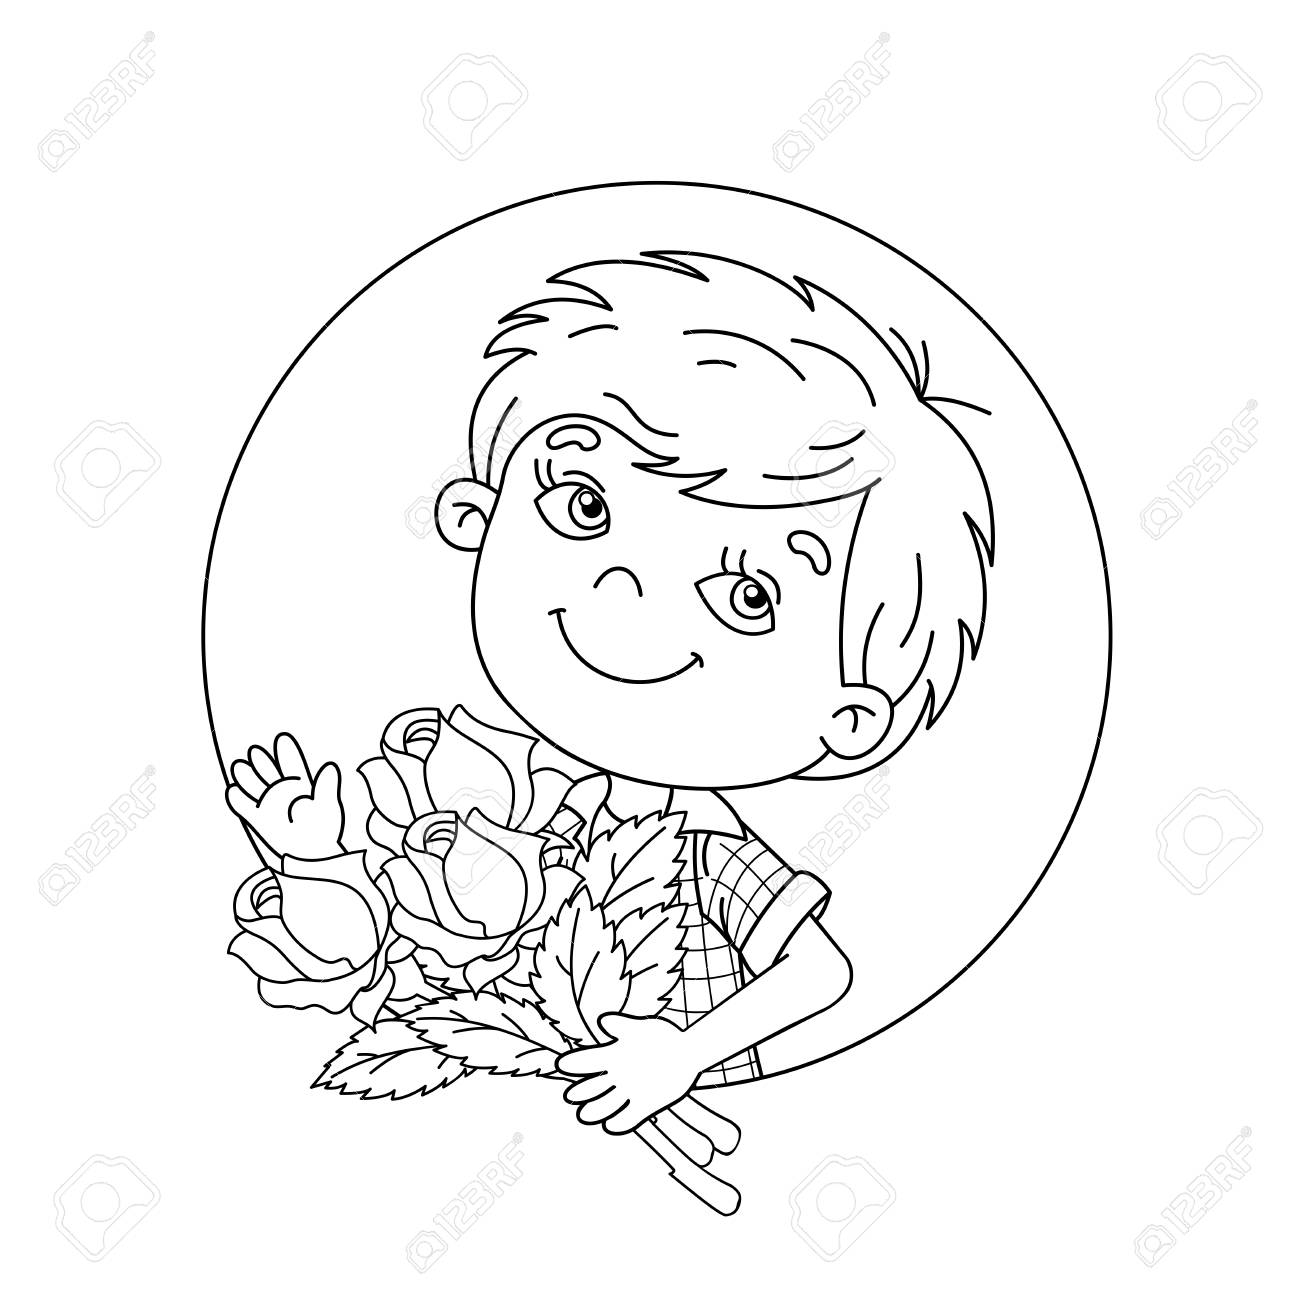 Coloring Page Outline Of Cartoon Boy Holding A Bouquet Of Roses